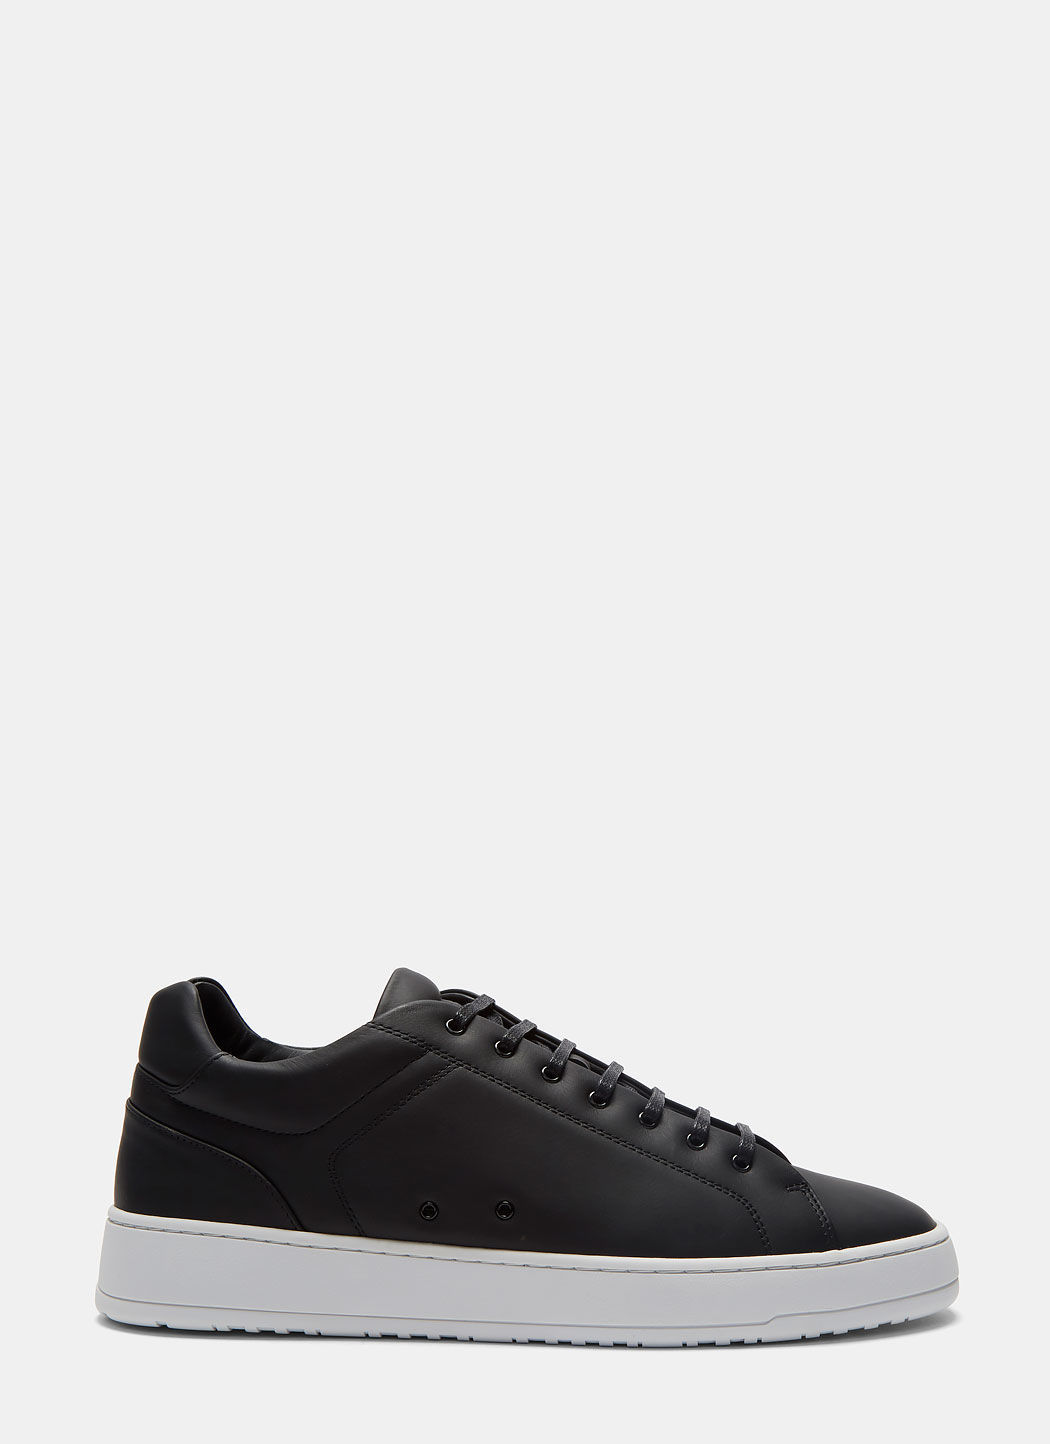 ETQ. Men'S Low 4 Sneakers In Black